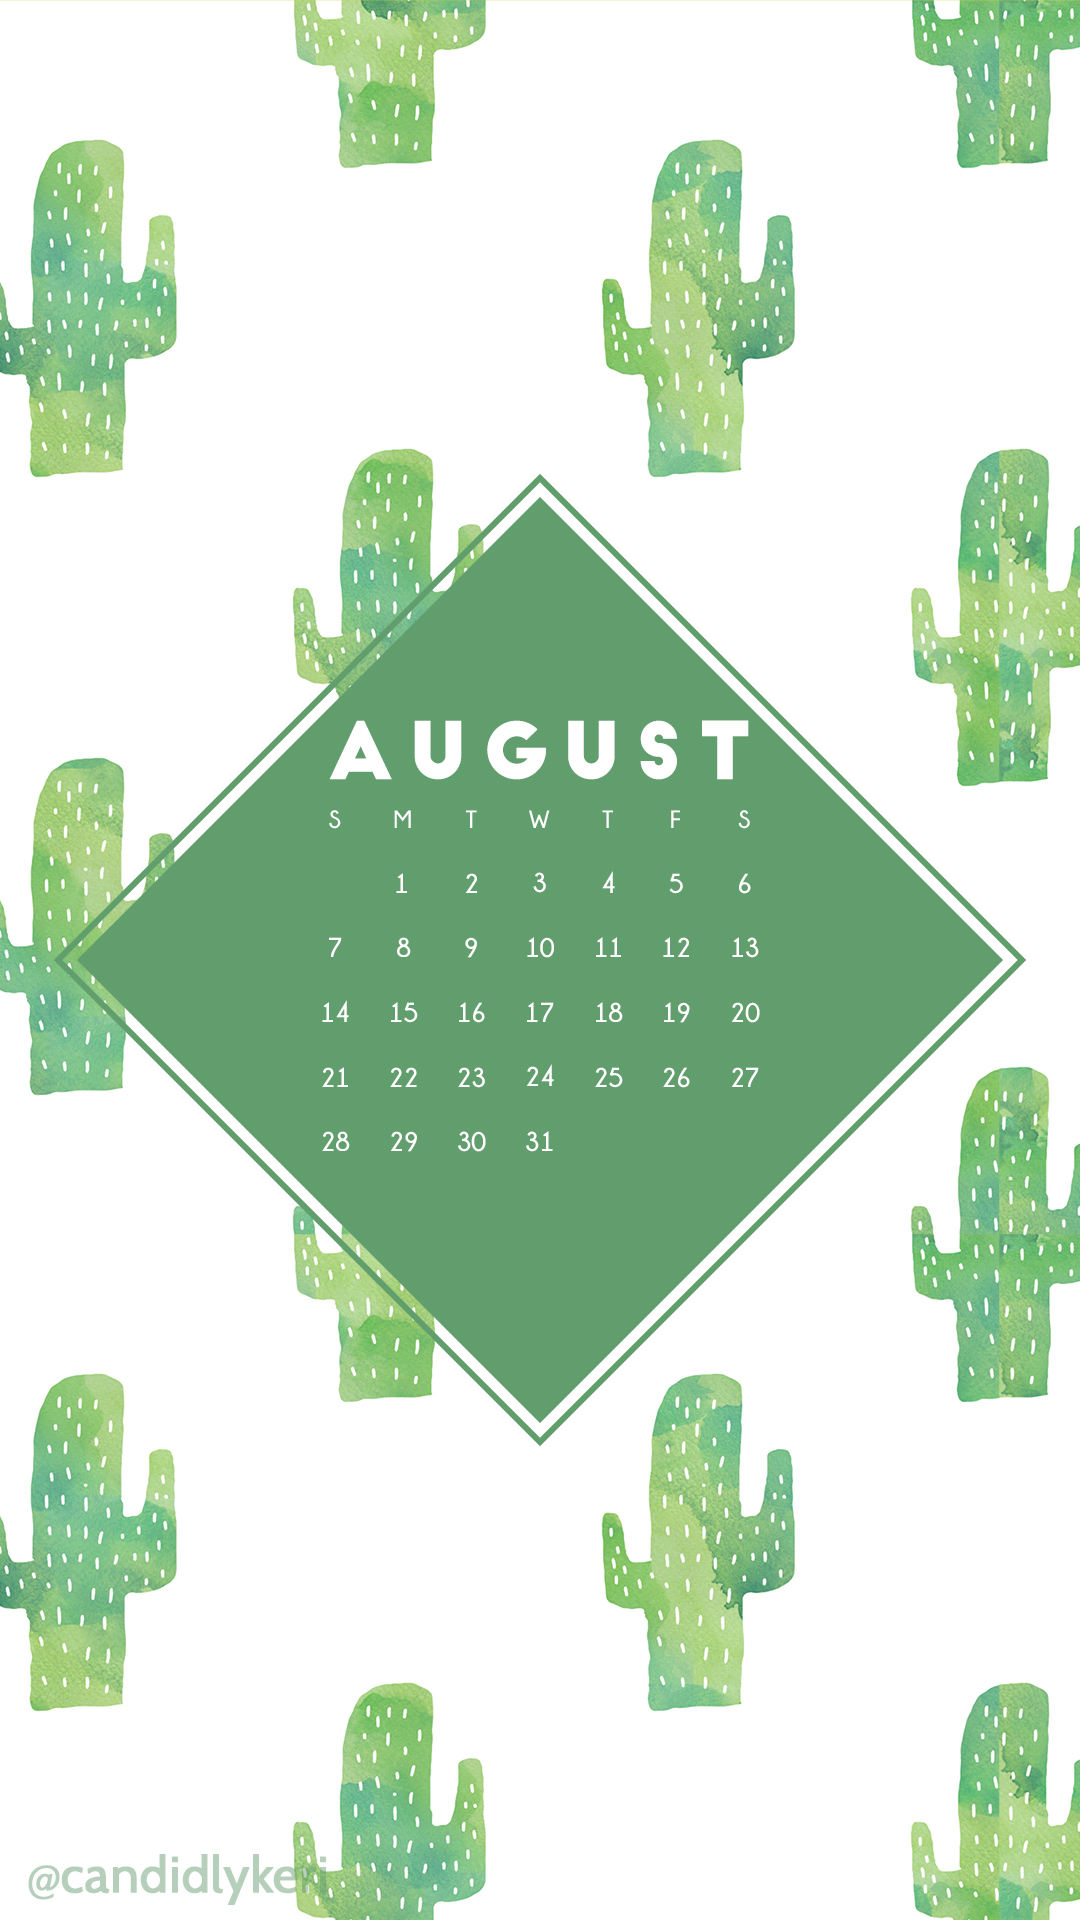 Cactus-fun-cacti-green-watercolor-background-August-calendar-you-can-download-for-fre-wallpaper-wp3603820